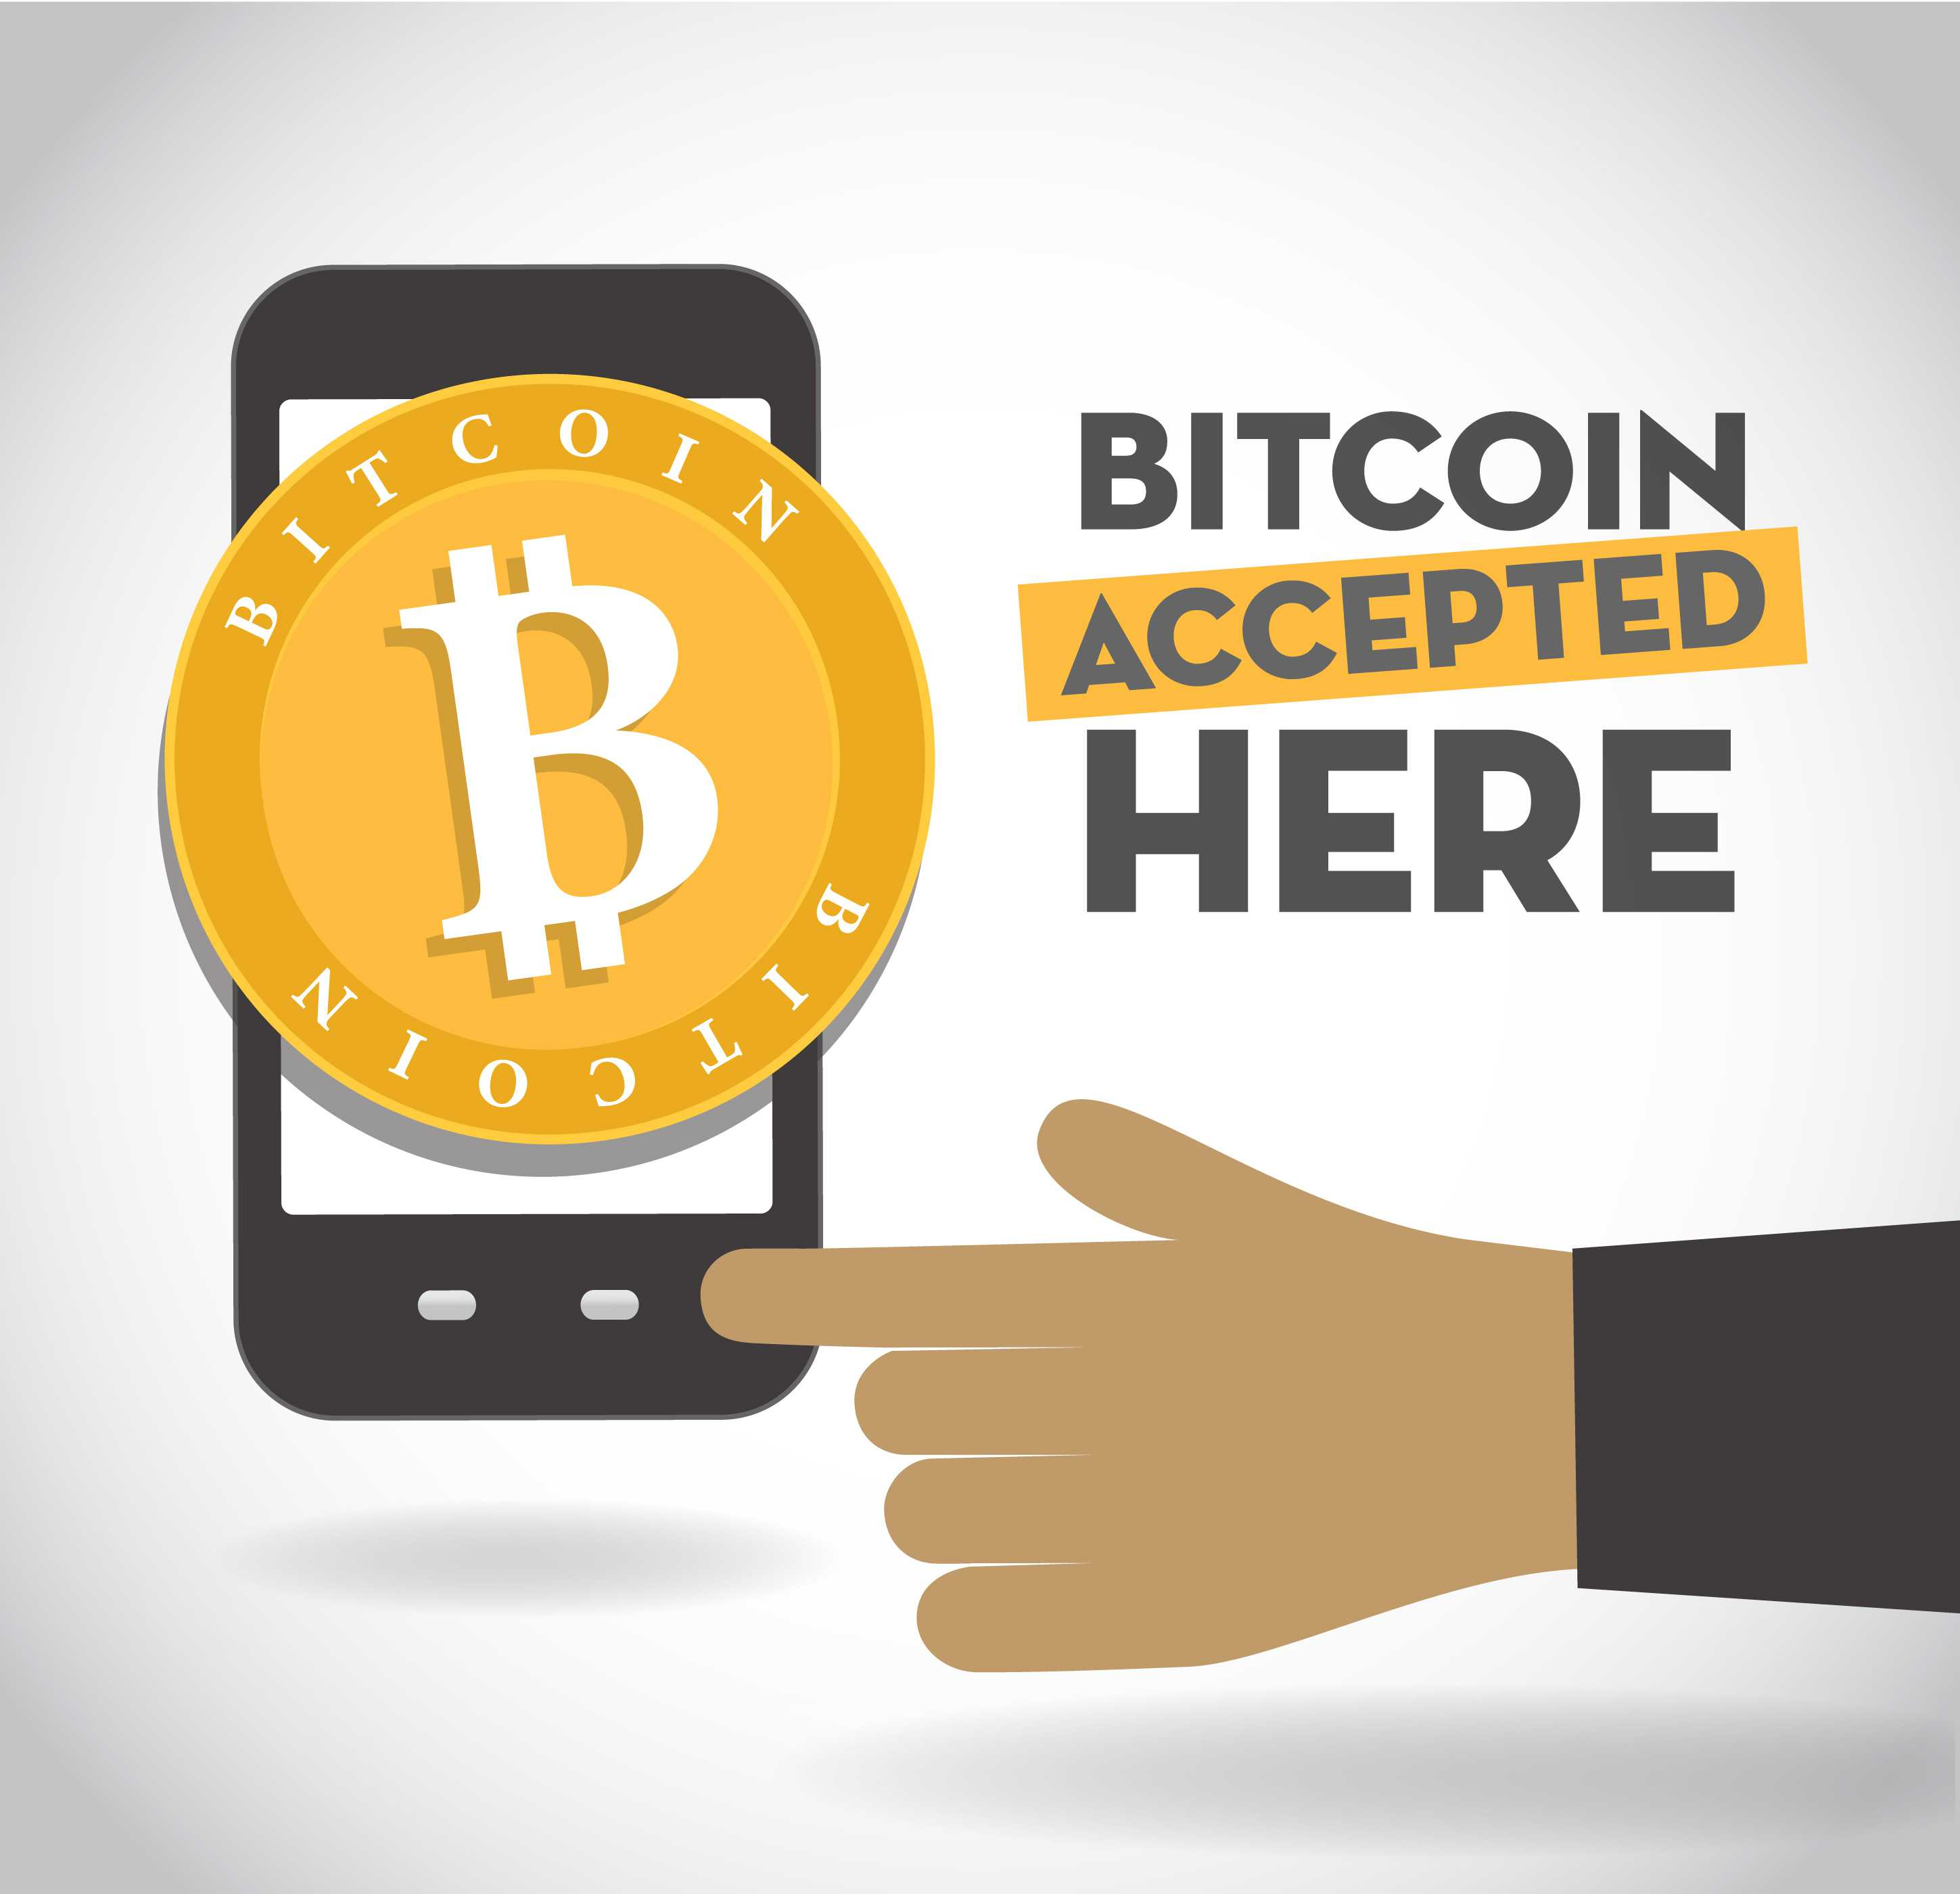 Dating sites accepting bitcoin